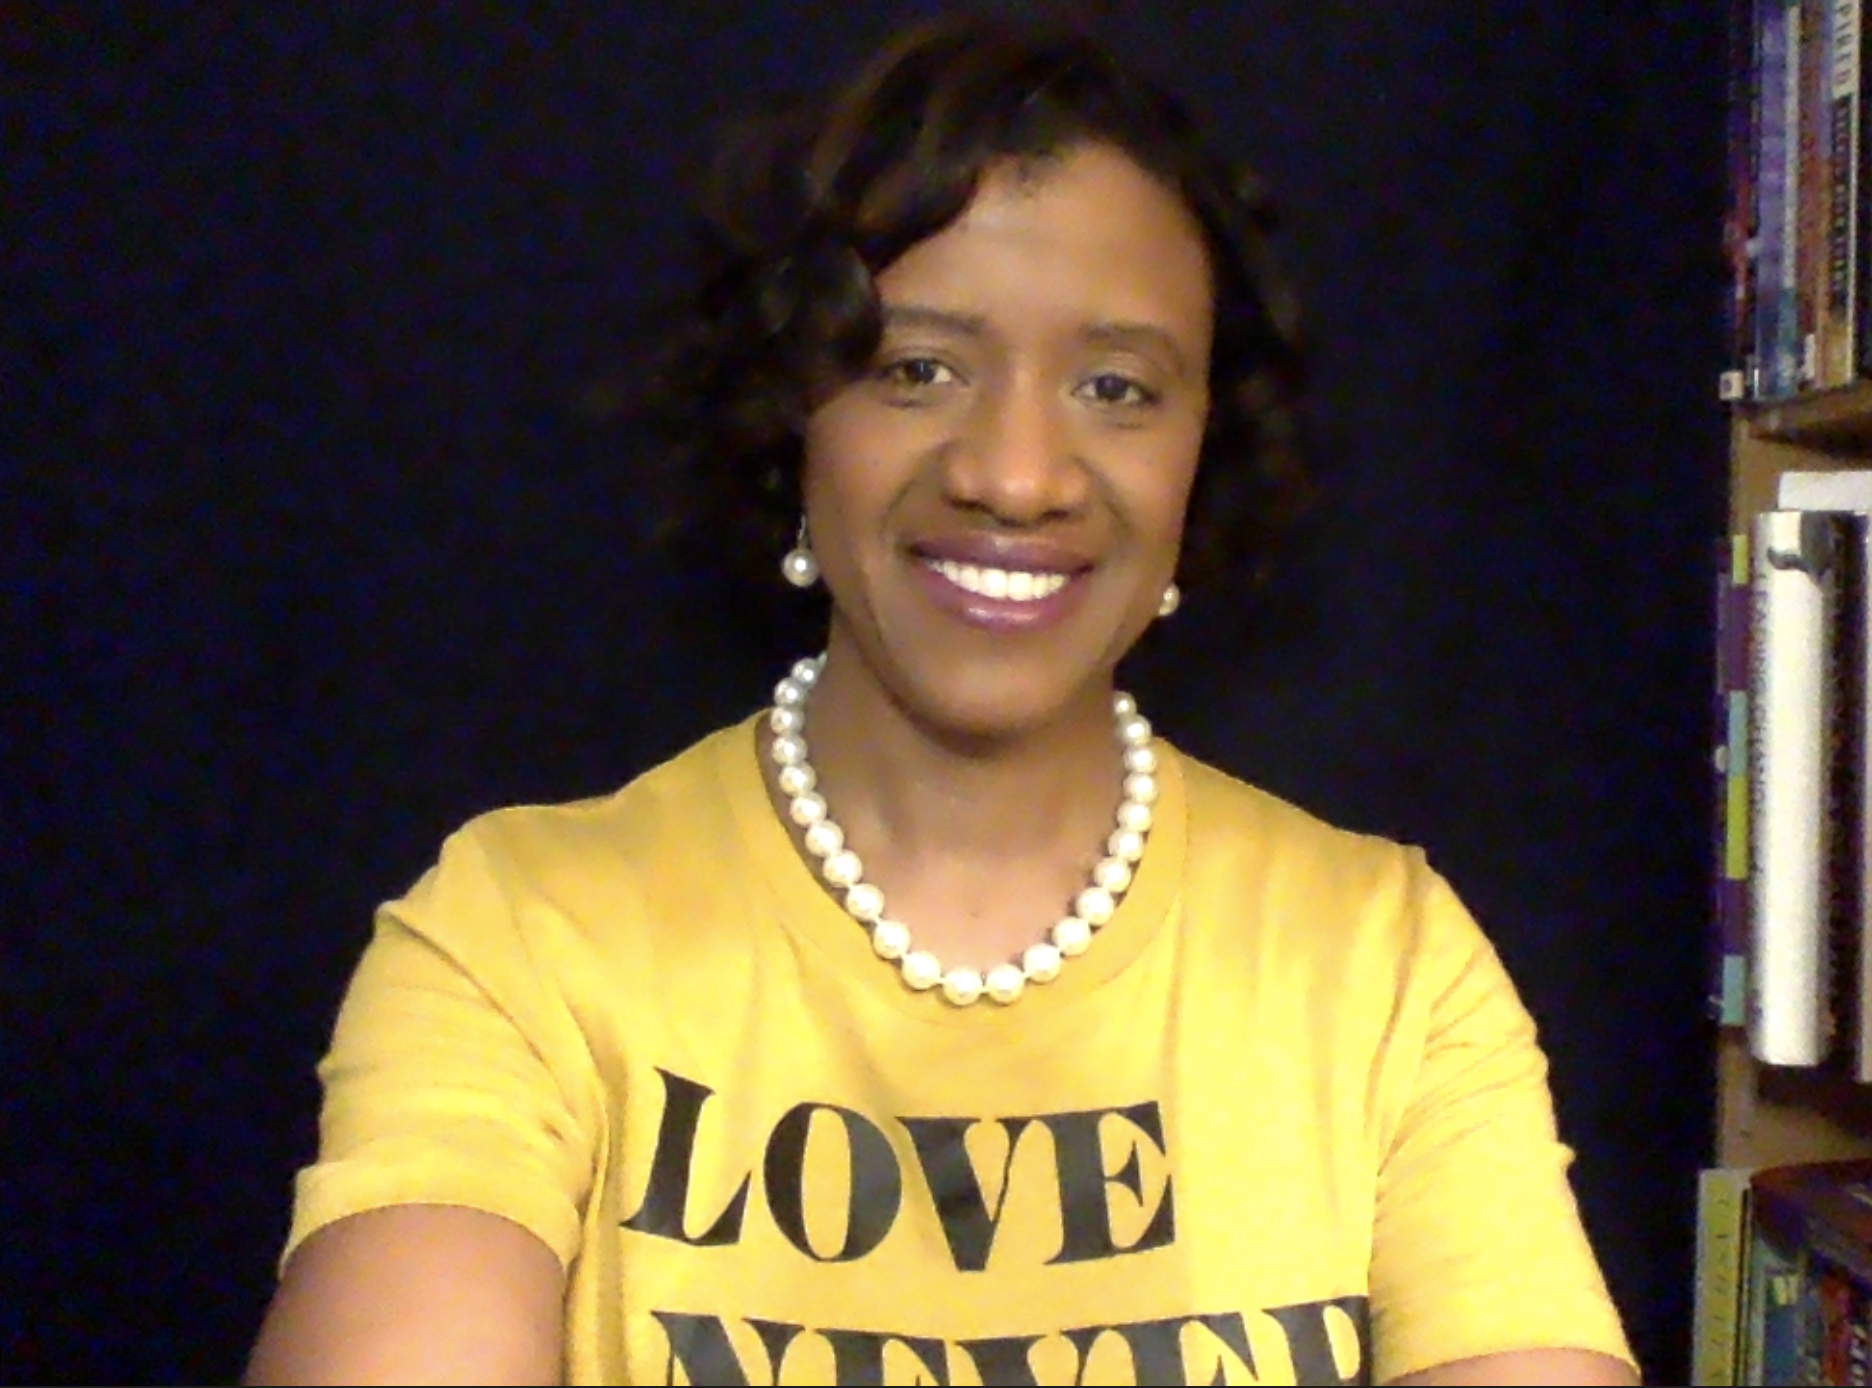 Dr. Shaunta in gold t-shirt with message Love Never Fails. Seated with pearls on in front of navy blue background and next to bookcase